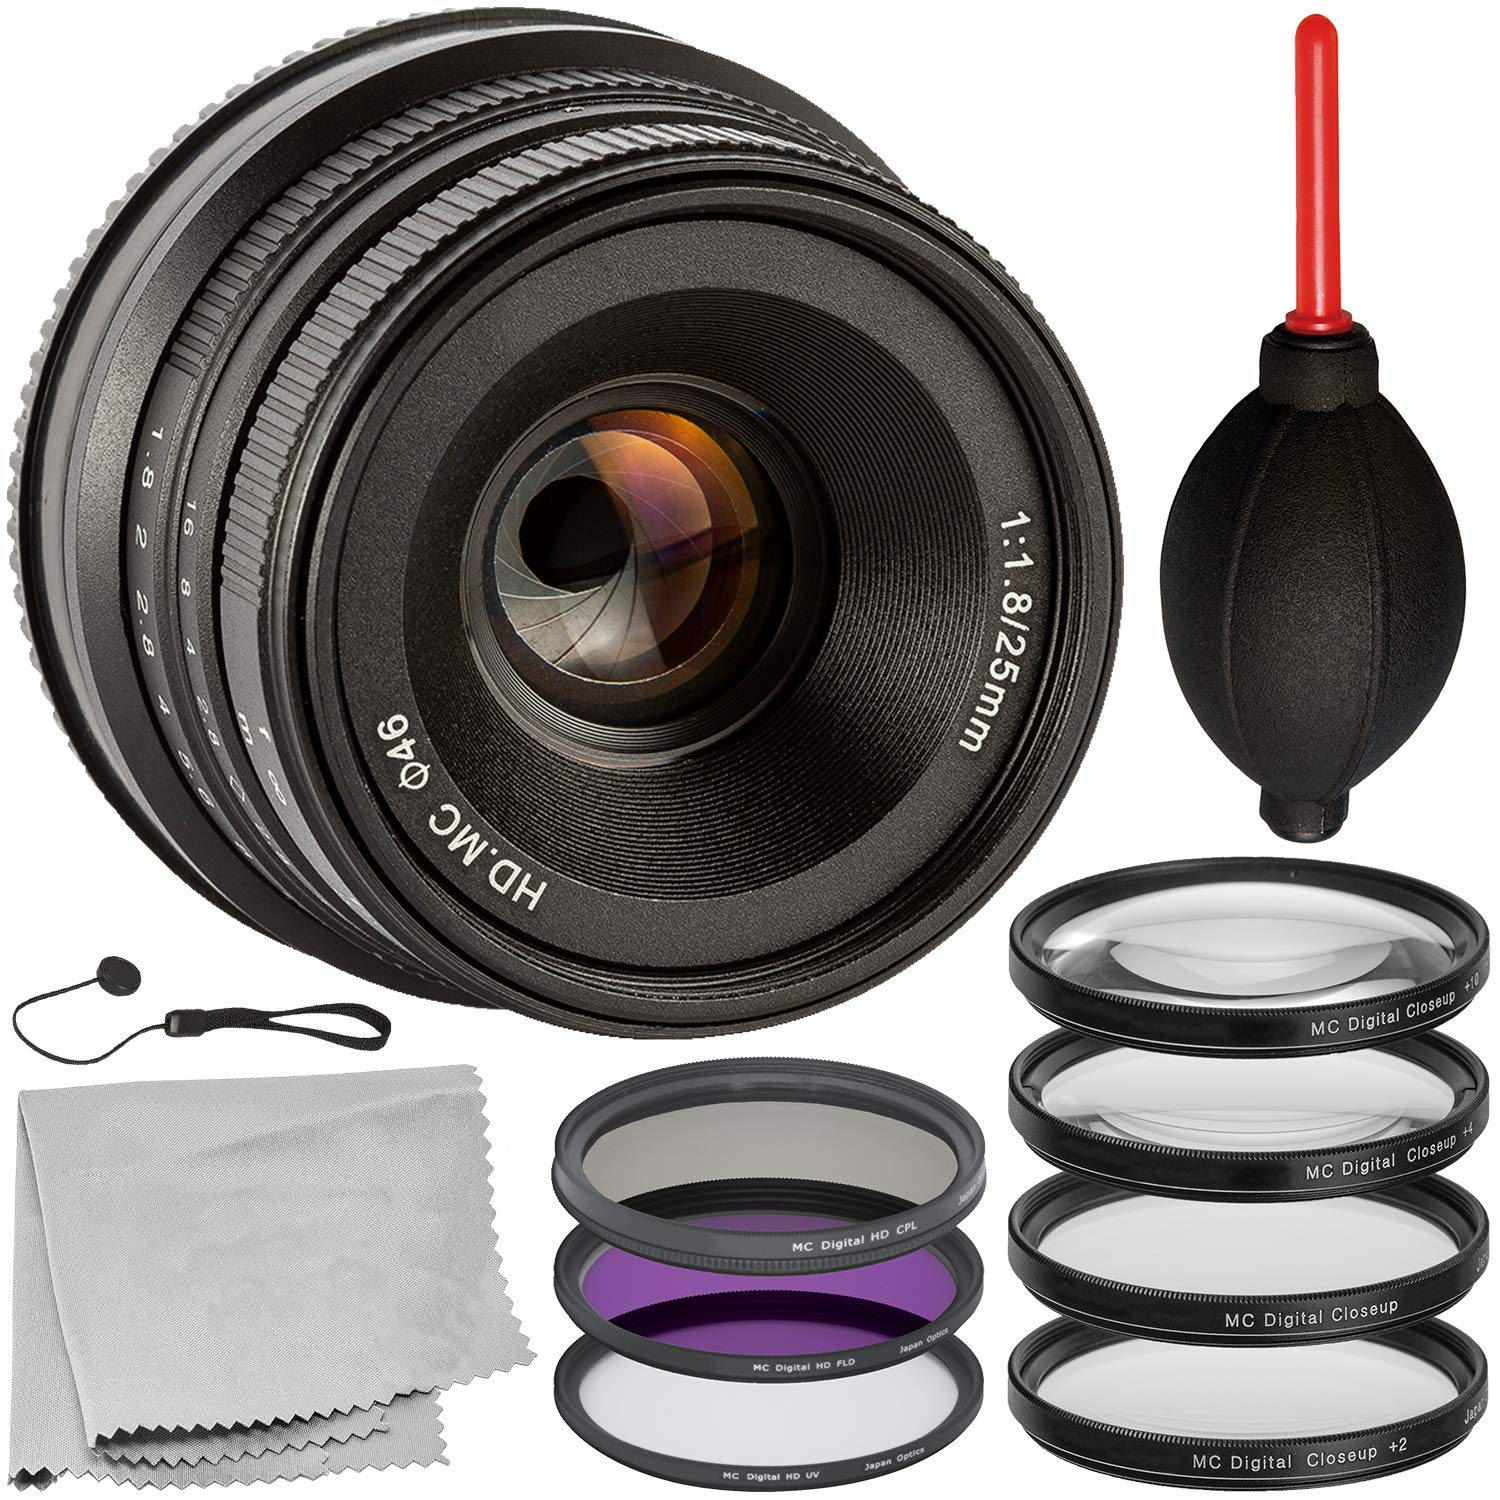 Microfiber Cleaning Cloth Lens Cap Keeper Includes: 3PC Filter Kit Multi-Coated 25mm f//1.8 Manual Lens for Fuji X-Series with 10PC Accessory Bundle 4PC Close-Up Macro Lenses Dust Blower